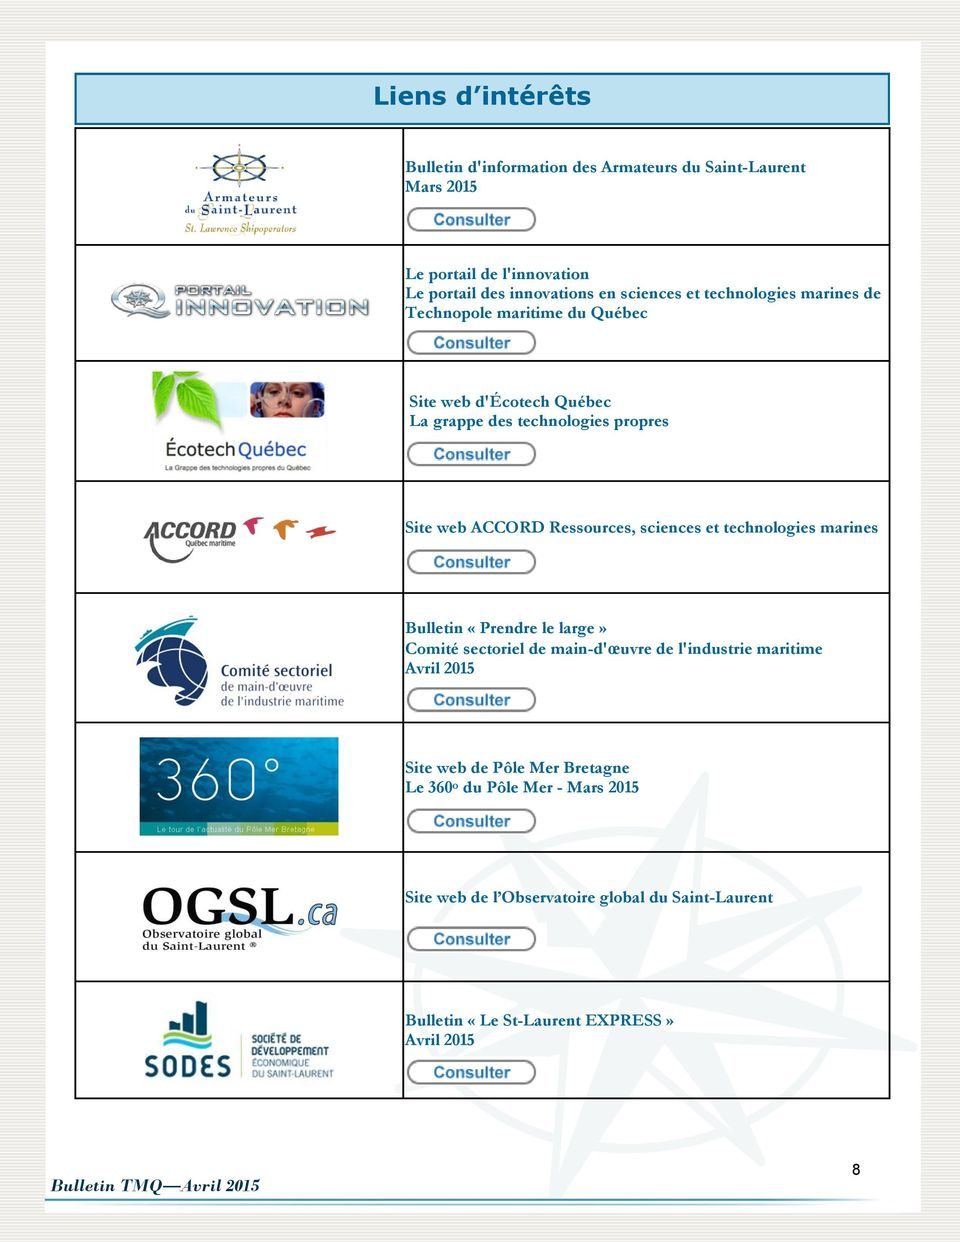 Ressources, sciences et technologies marines Bulletin «Prendre le large» Comité sectoriel de main-d'œuvre de l'industrie maritime Avril 2015 Site